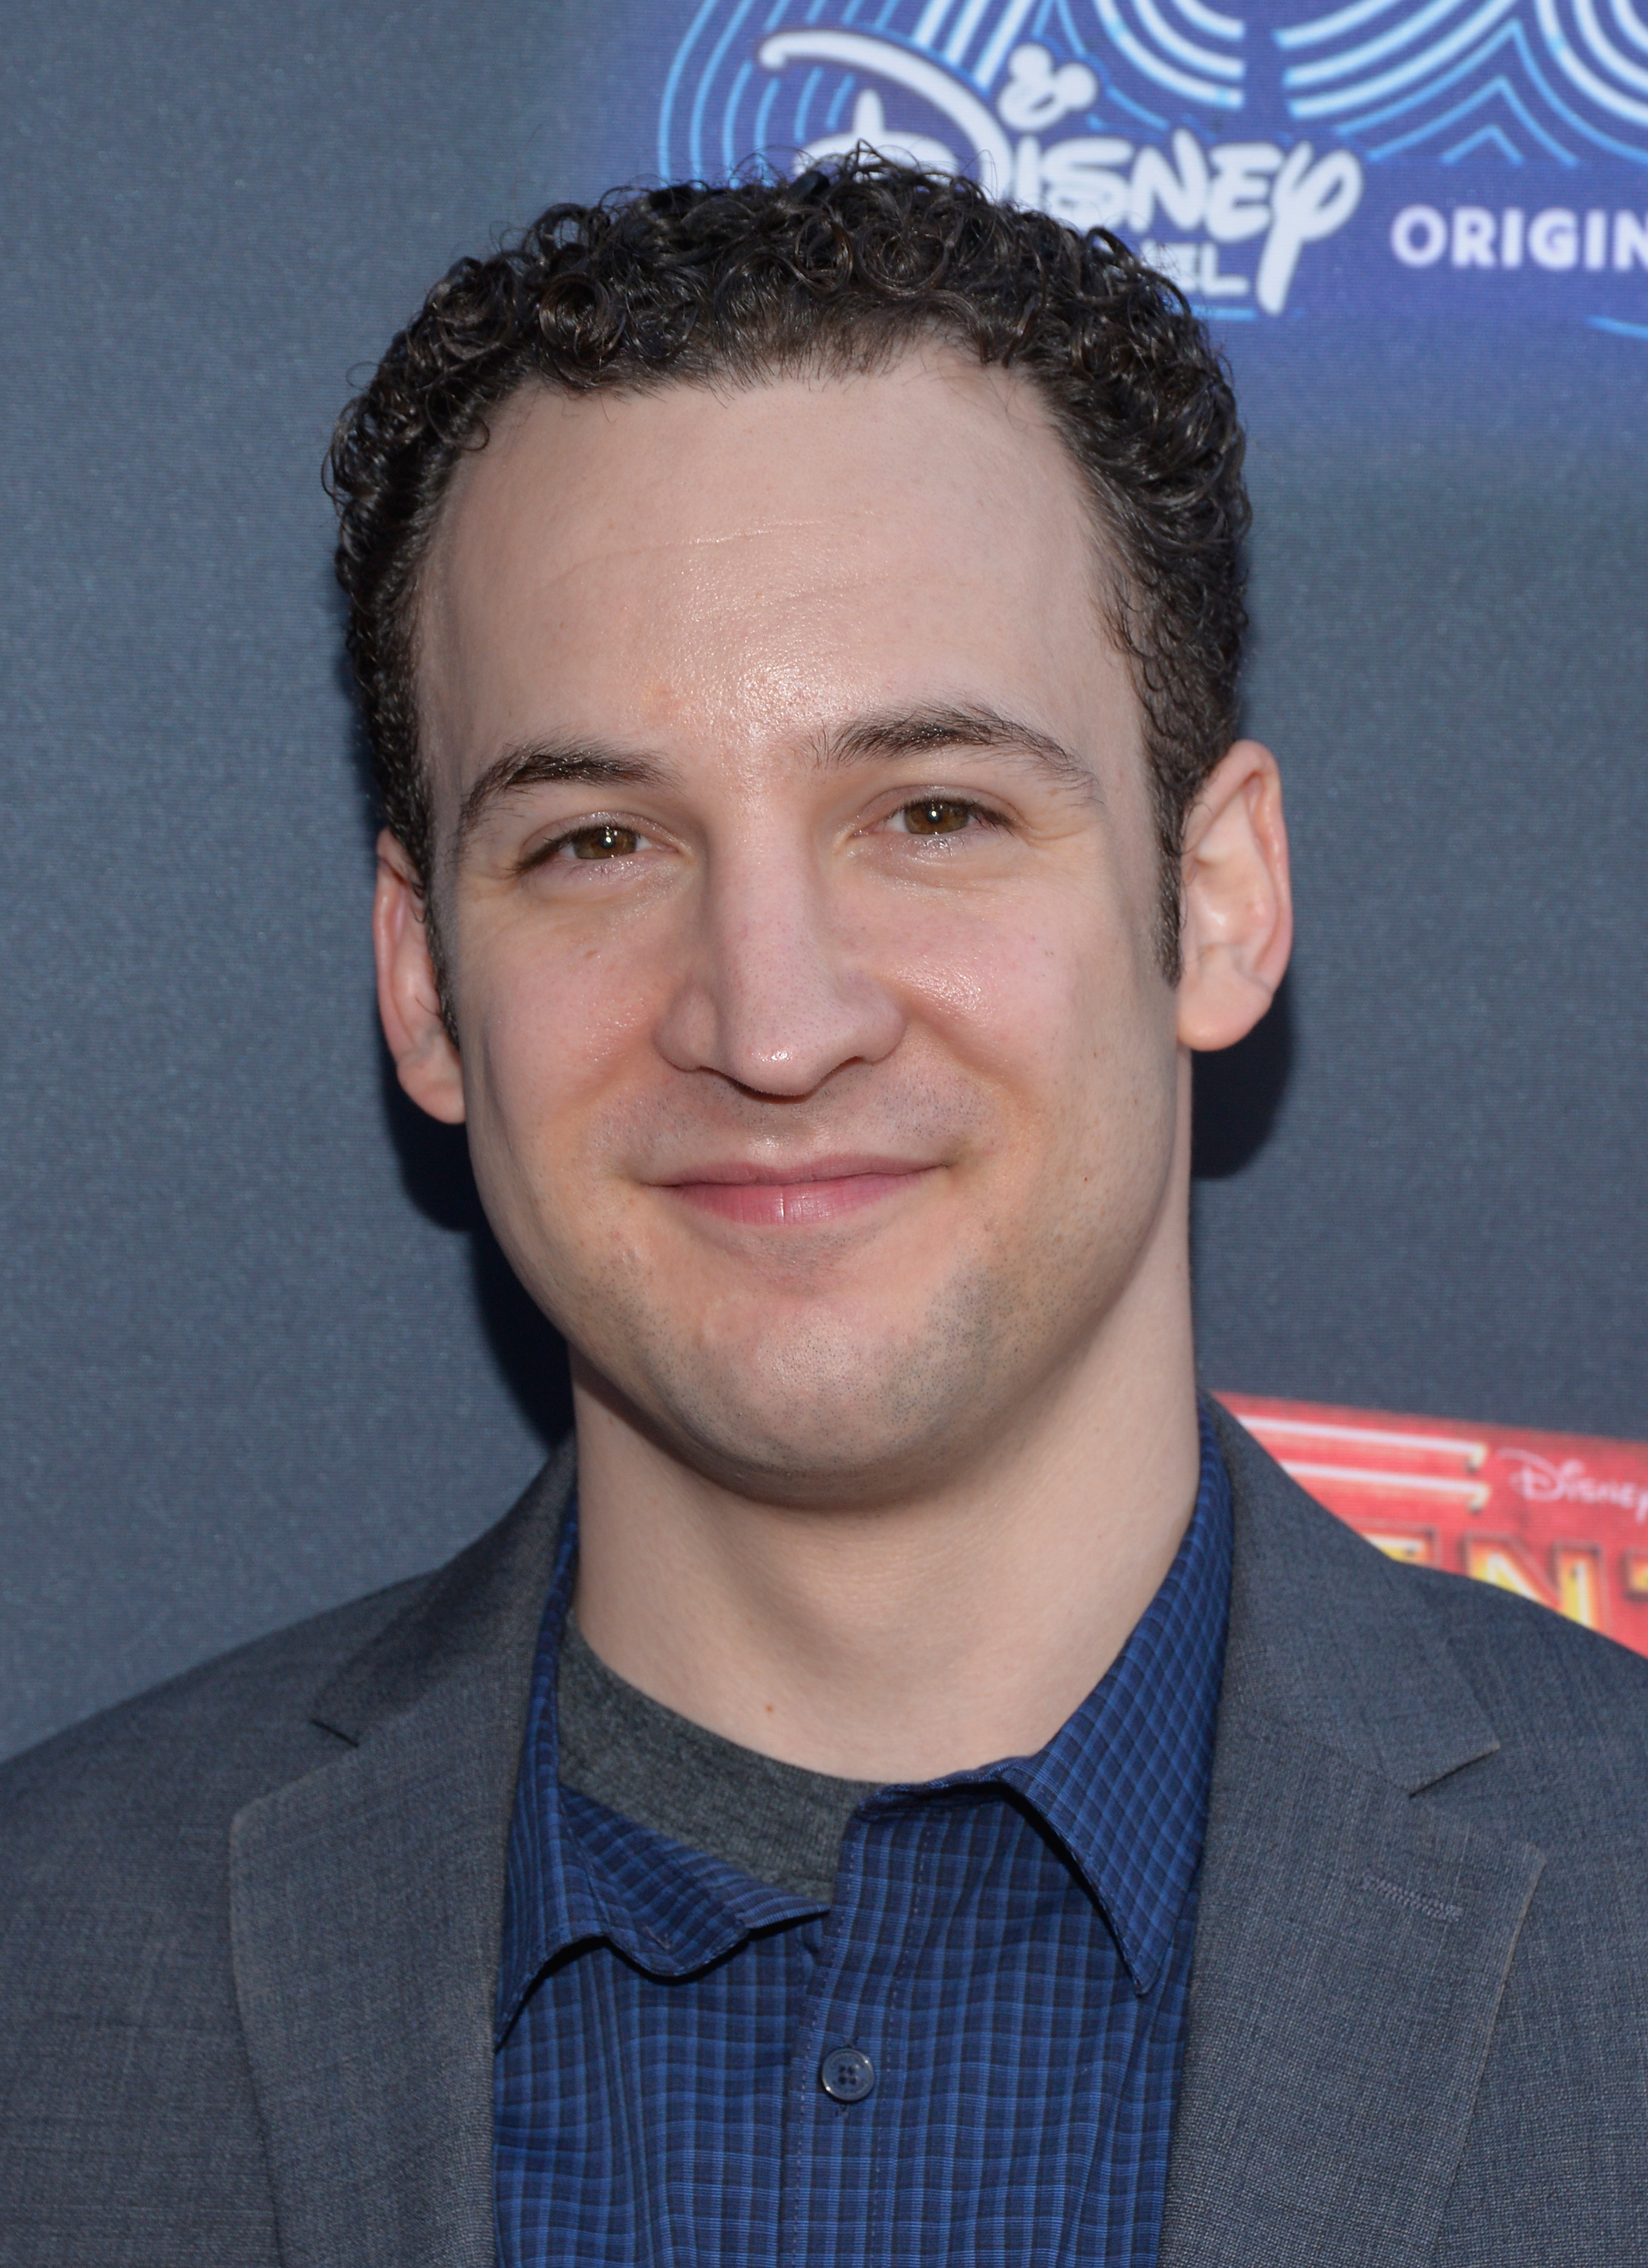 Actor Ben Savage attends the premiere of 100th Disney Channel's Original Movie  Adventures In Babysitting  and celebration of all DCOMS at Directors Guild Of America on June 23, 2016 in Los Angeles.